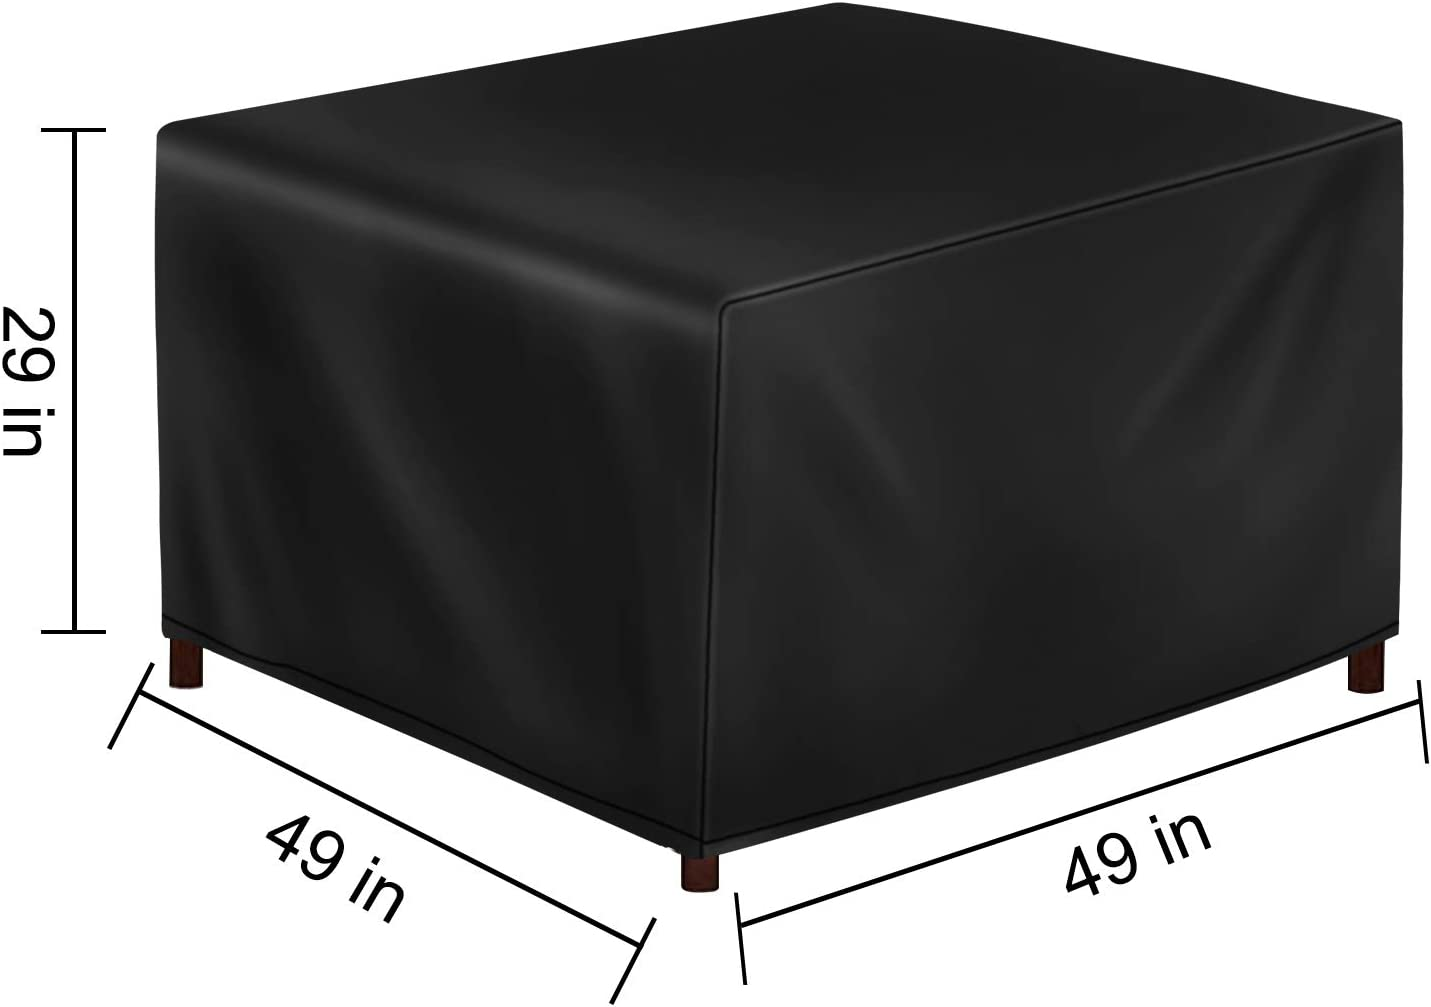 48x48x29inch Windproof /& UV Protection Patio Furniture Cover for Garden Patio Table Cover Outdoor Waterproof Square Table Cover